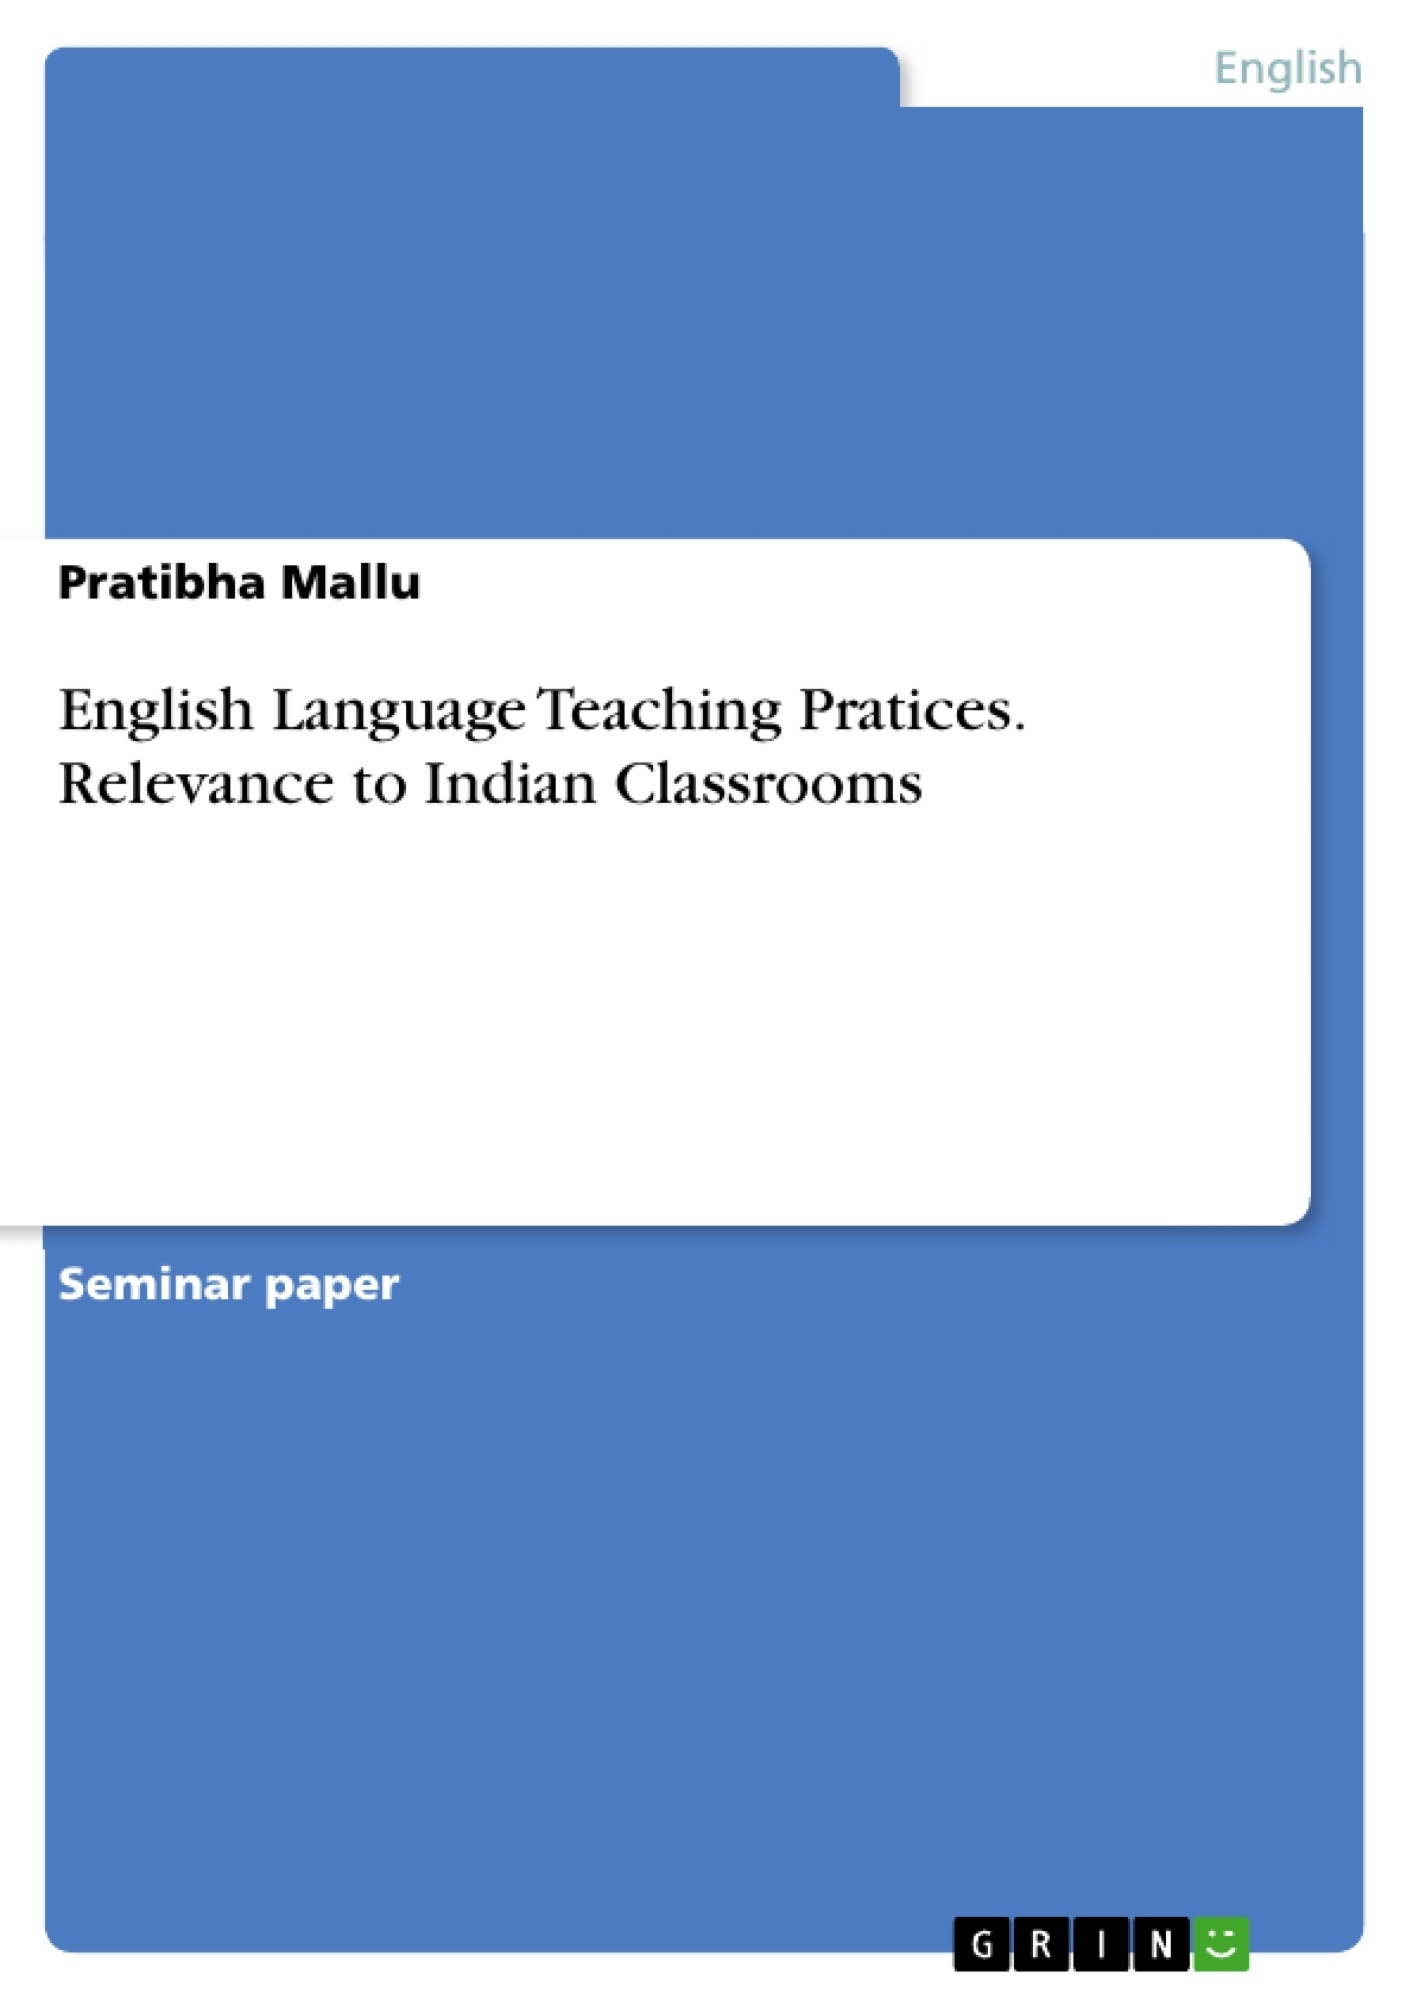 Title: English Language Teaching Pratices. Relevance to Indian Classrooms